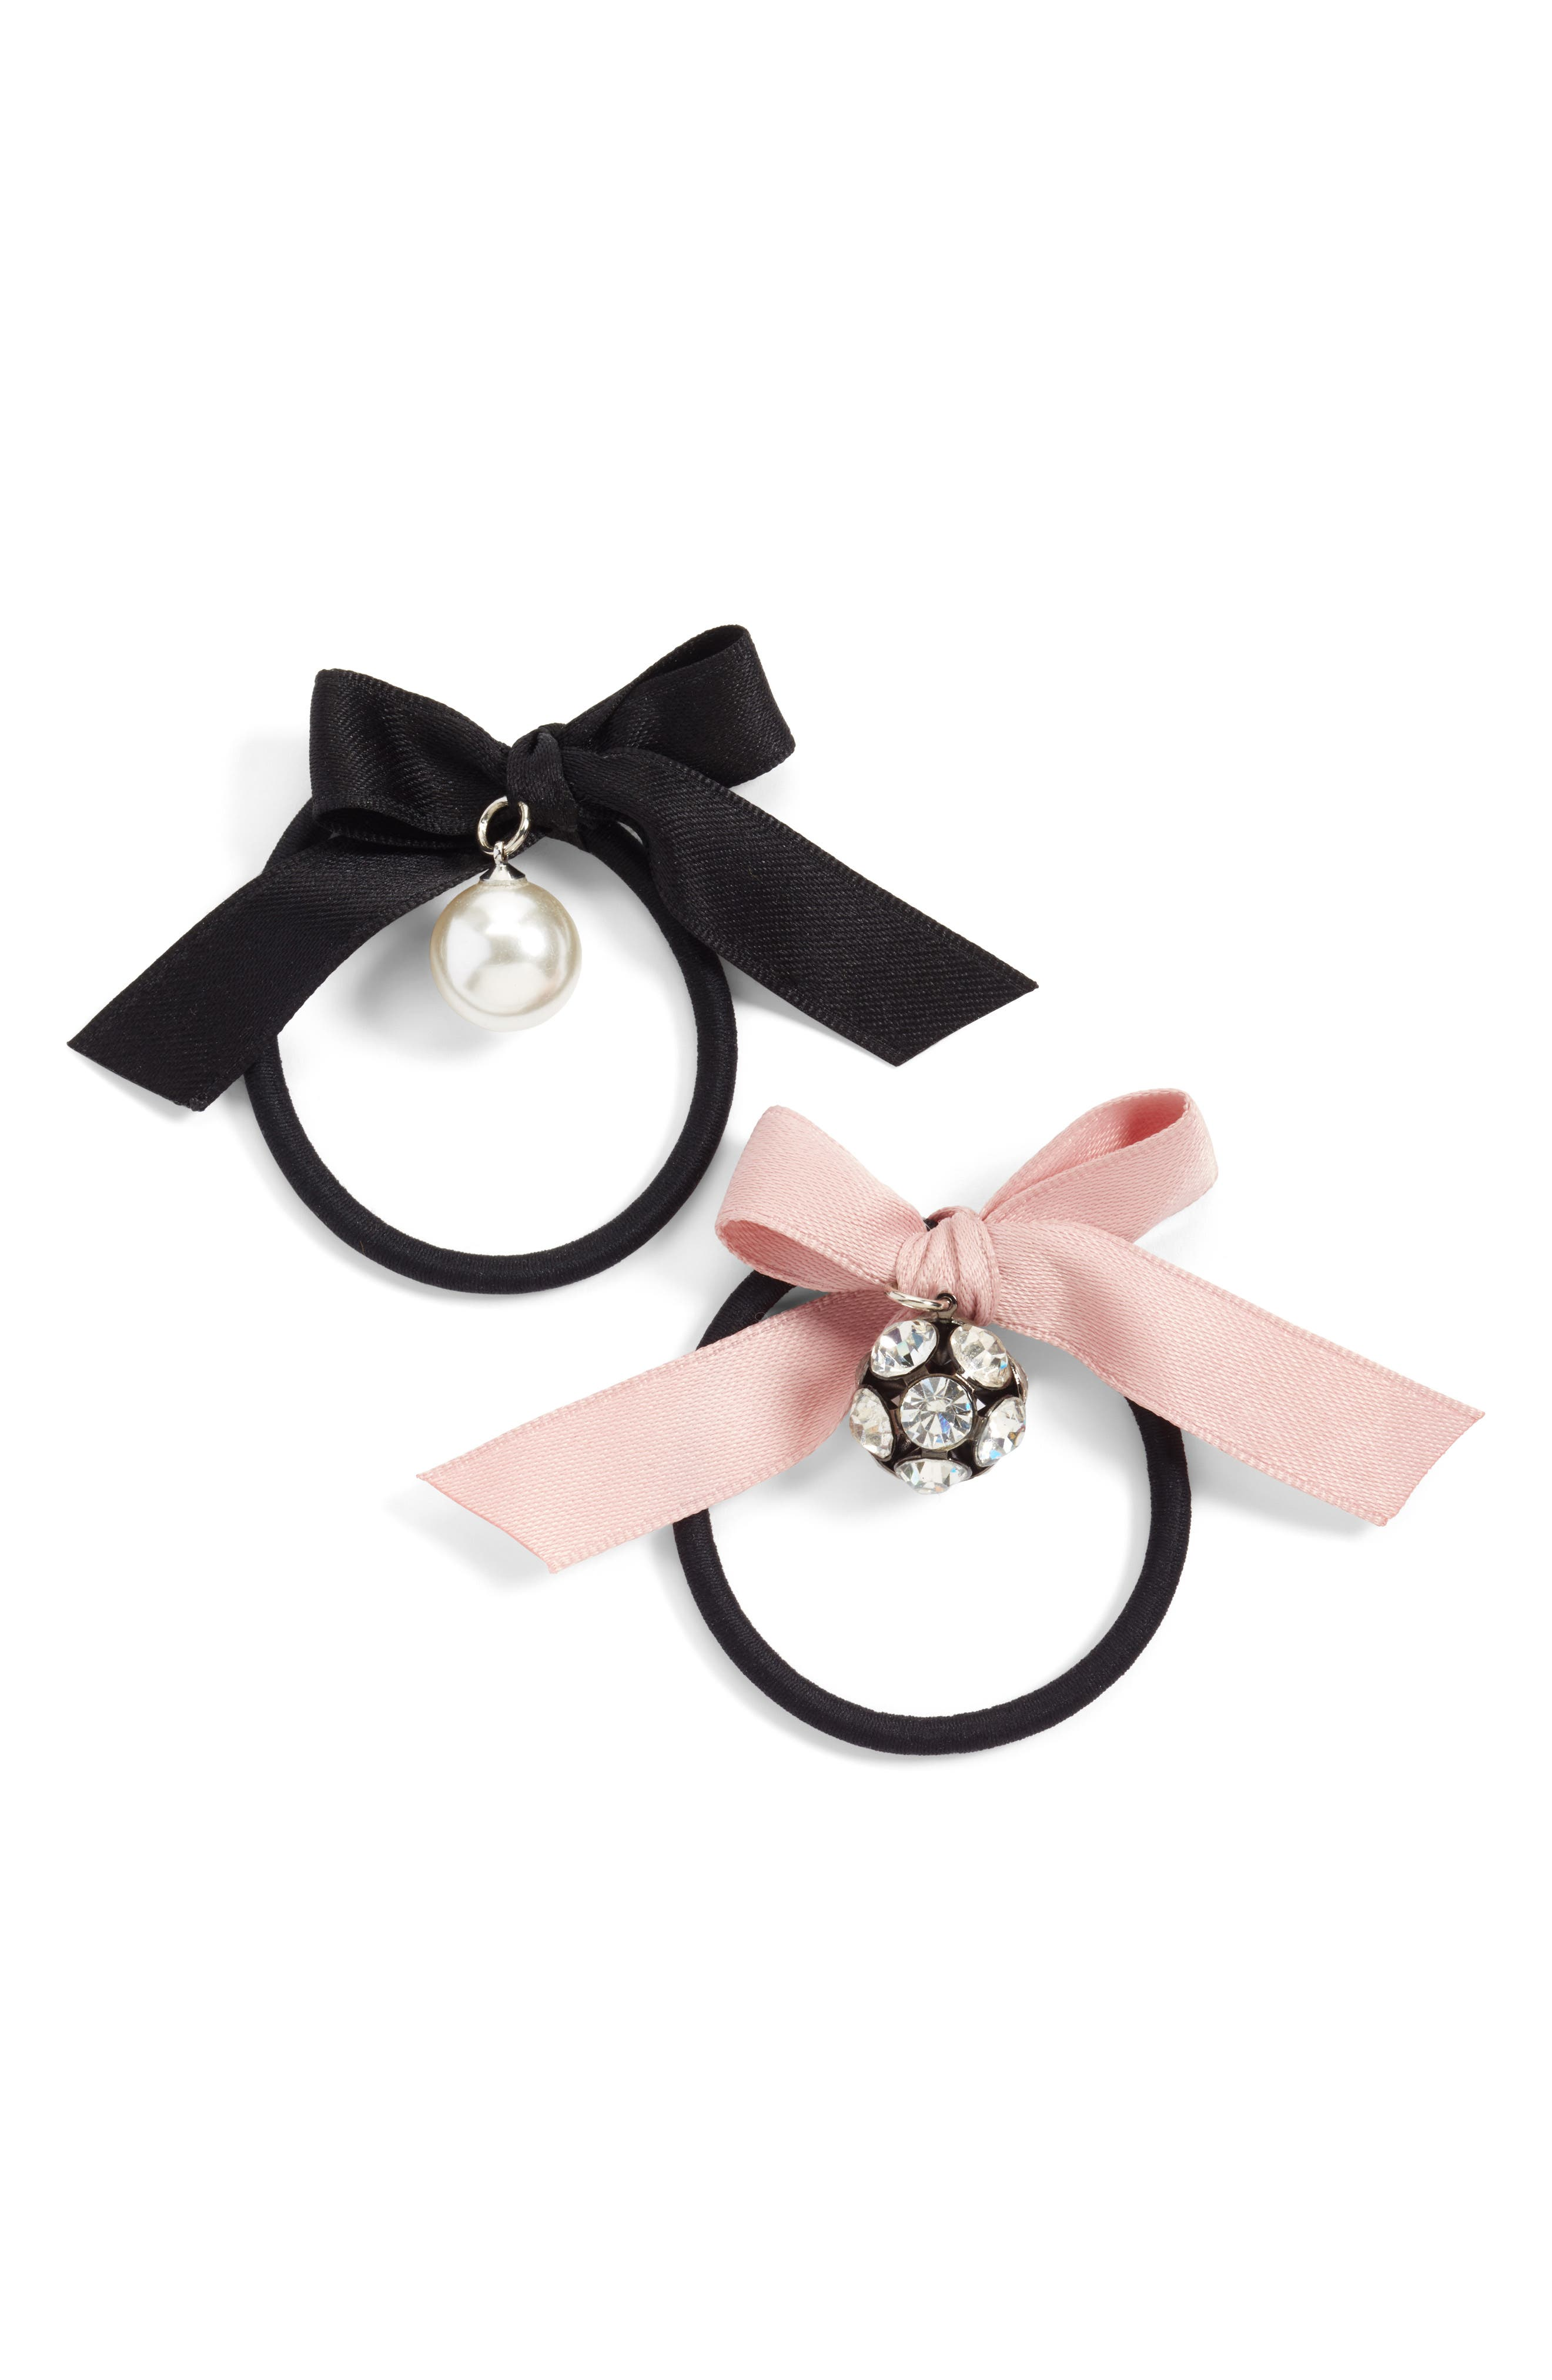 2-Pack Bow with Imitation Pearl & Crystal Charm Ponytail Holders,                             Main thumbnail 1, color,                             Black/ Pink